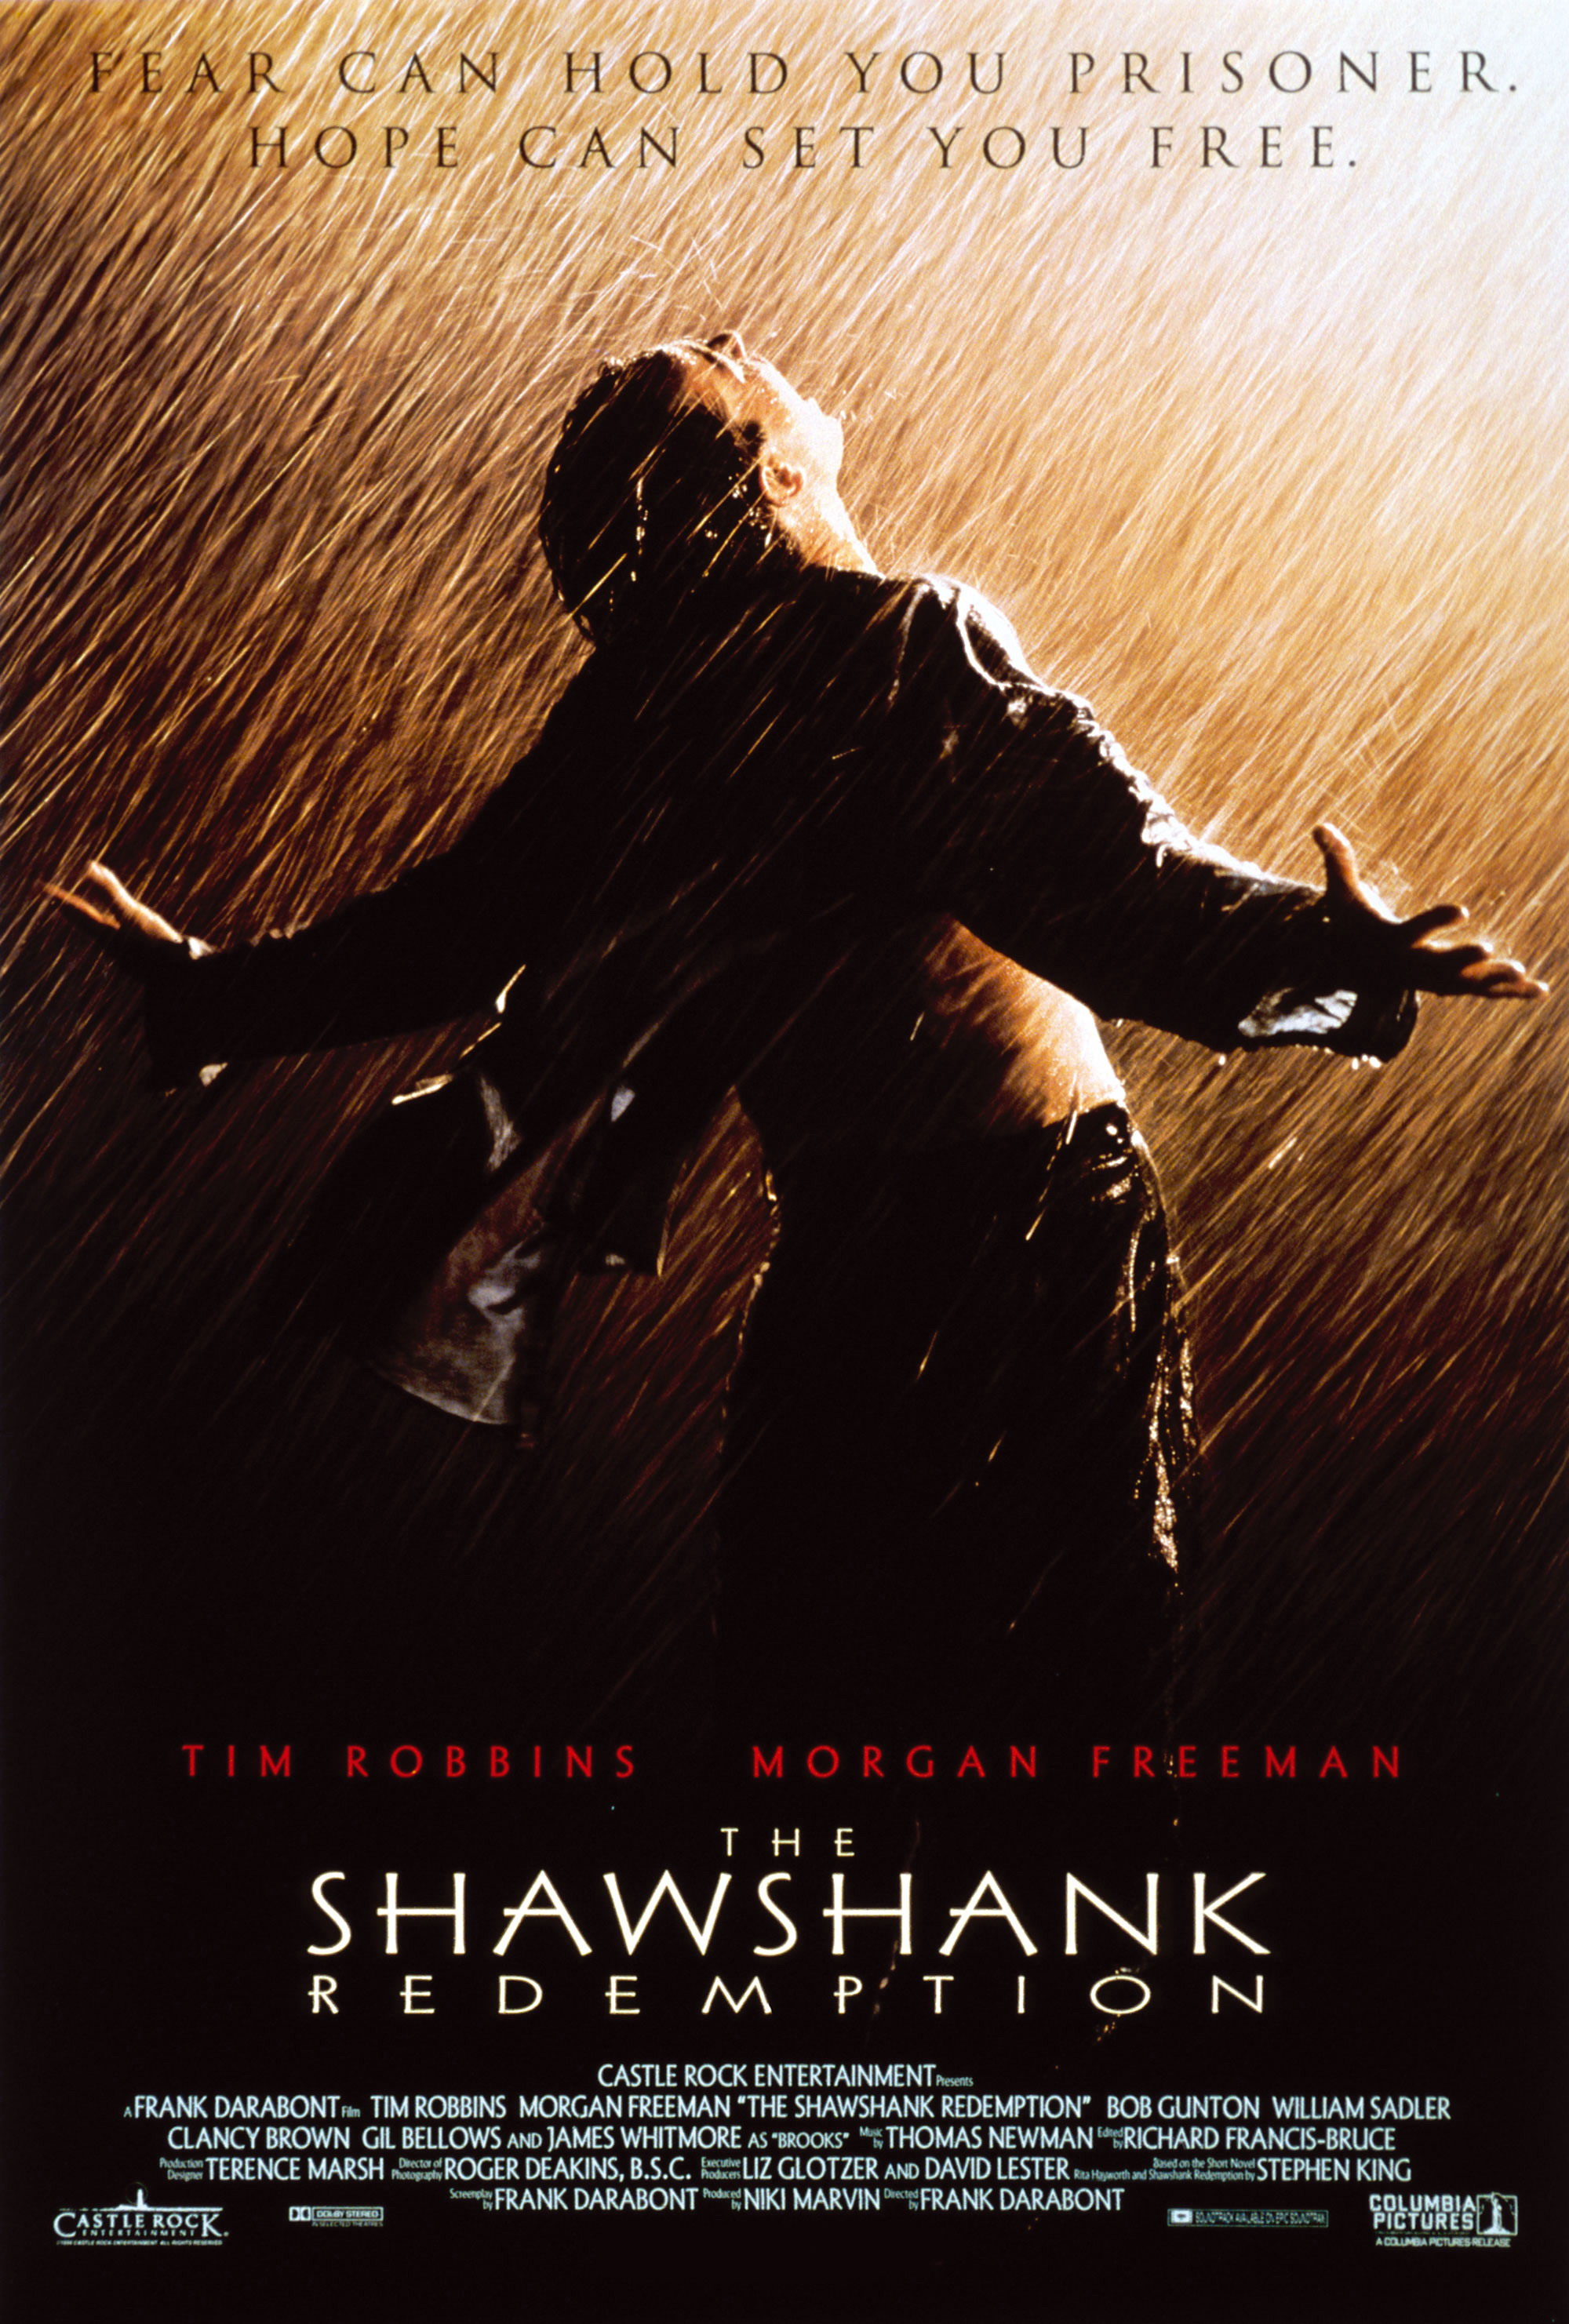 click to free download the wallpaper--Best Movie Recommendation, the Shawshank Redemption, Cheer and Applause for Him, the Hero!